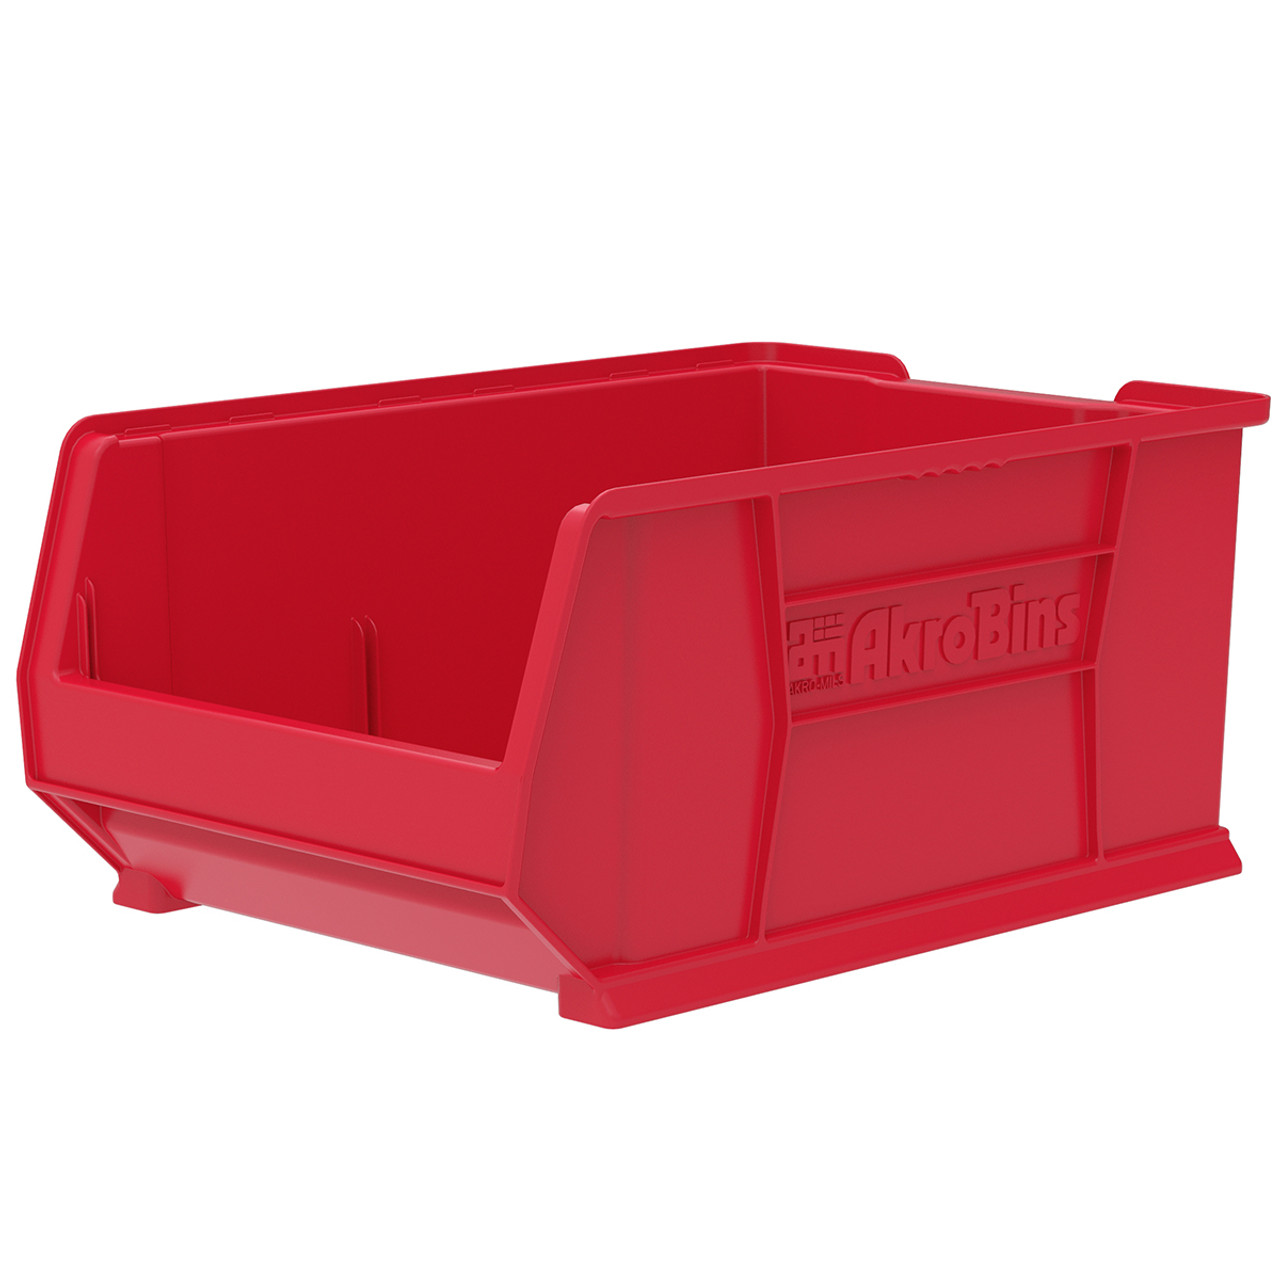 Bin, Super Size AkroBin 23-7/8 x 16-1/2 x 11  30288RED